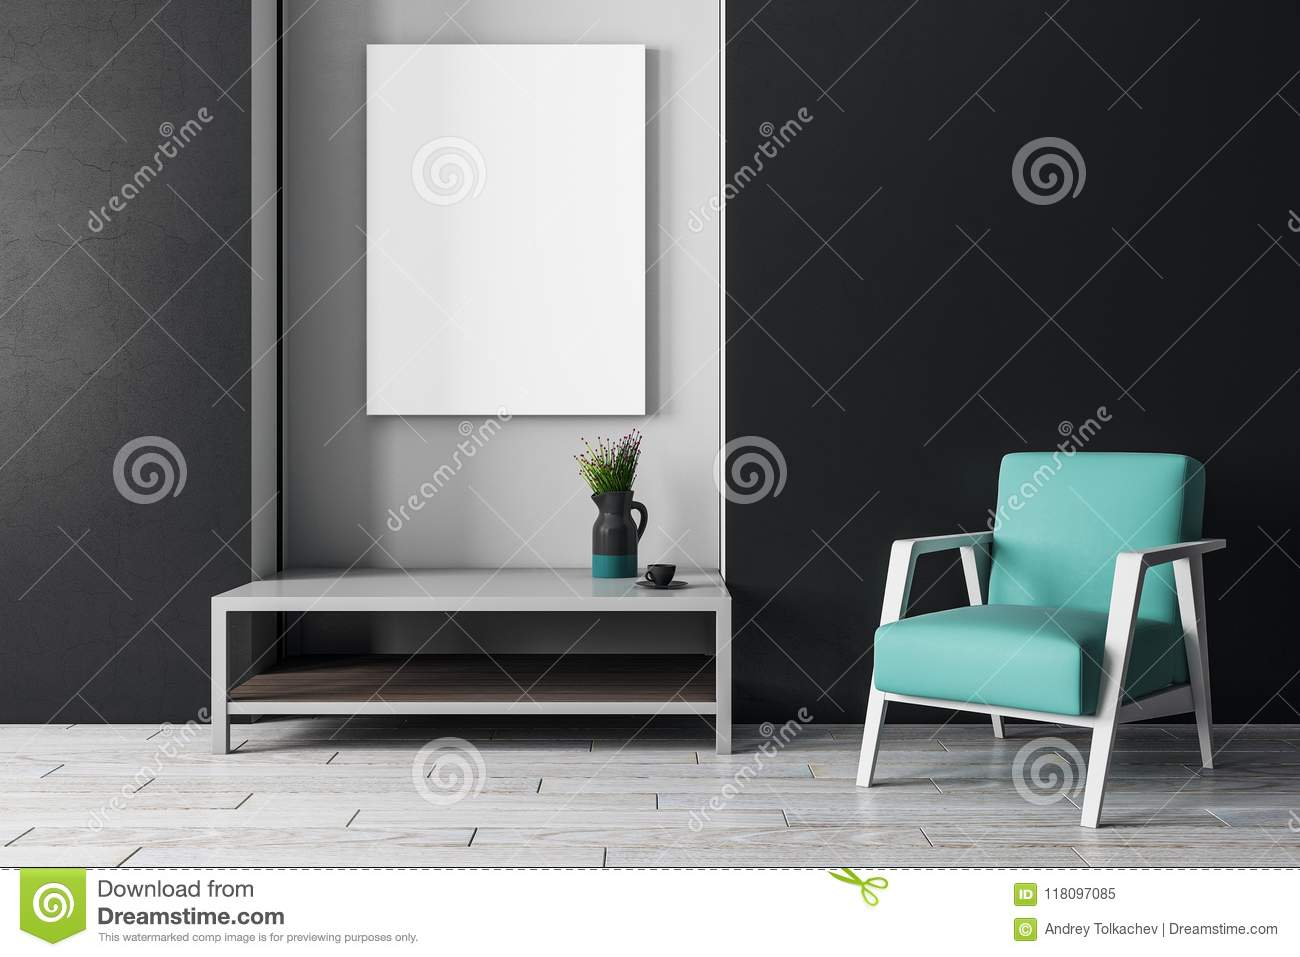 Modern interior with furniture and poster stock illustration